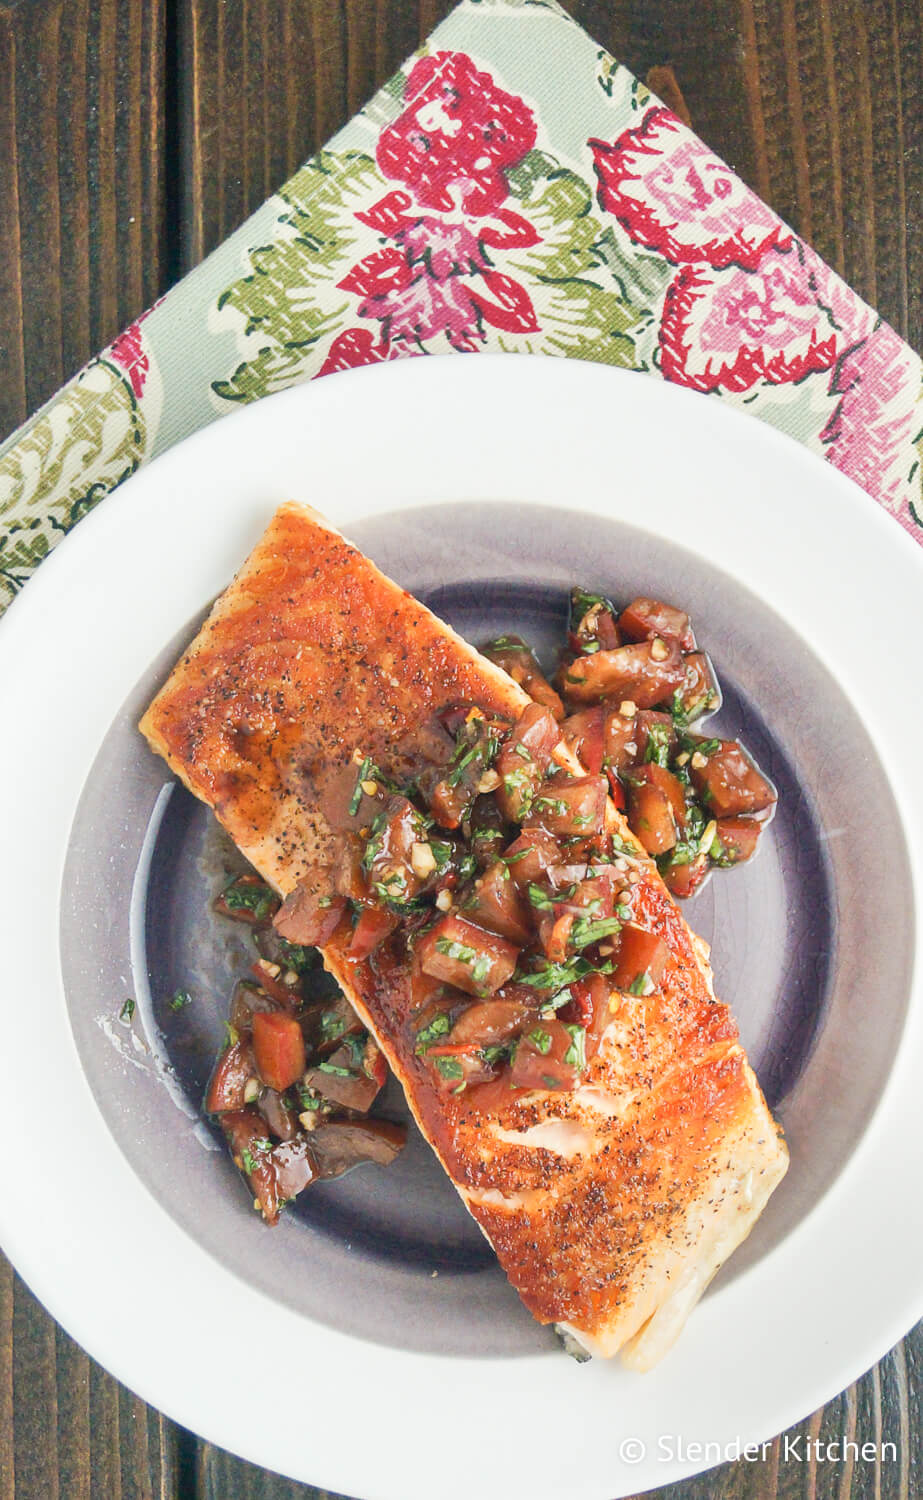 Italian salmon with tomato basil salsa on a white plate with a flowered napkin.